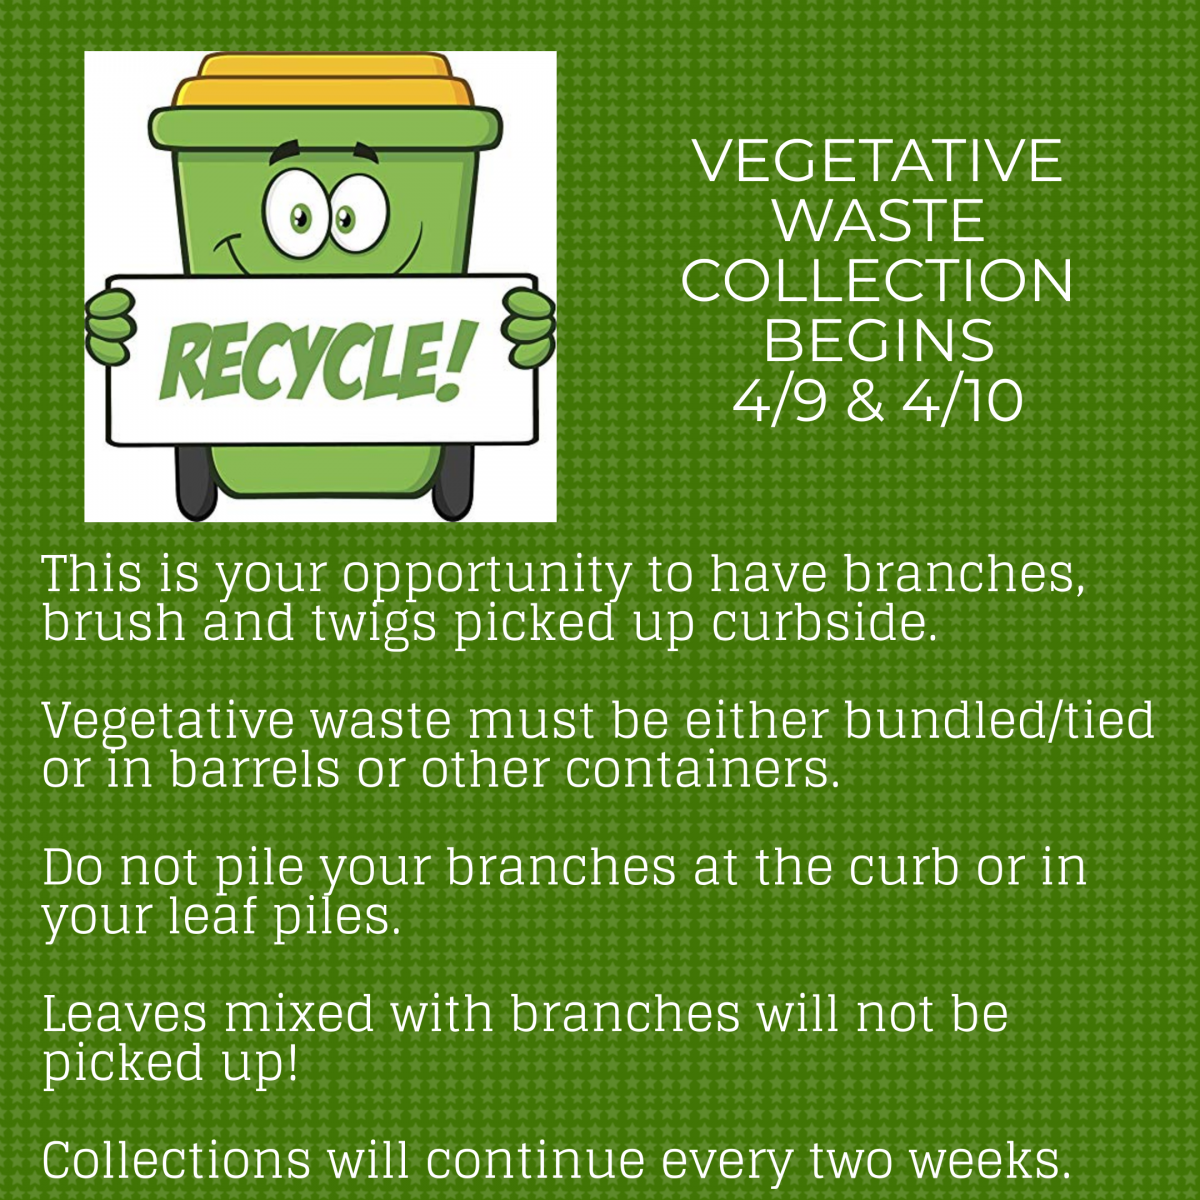 Vegetative Waste begins